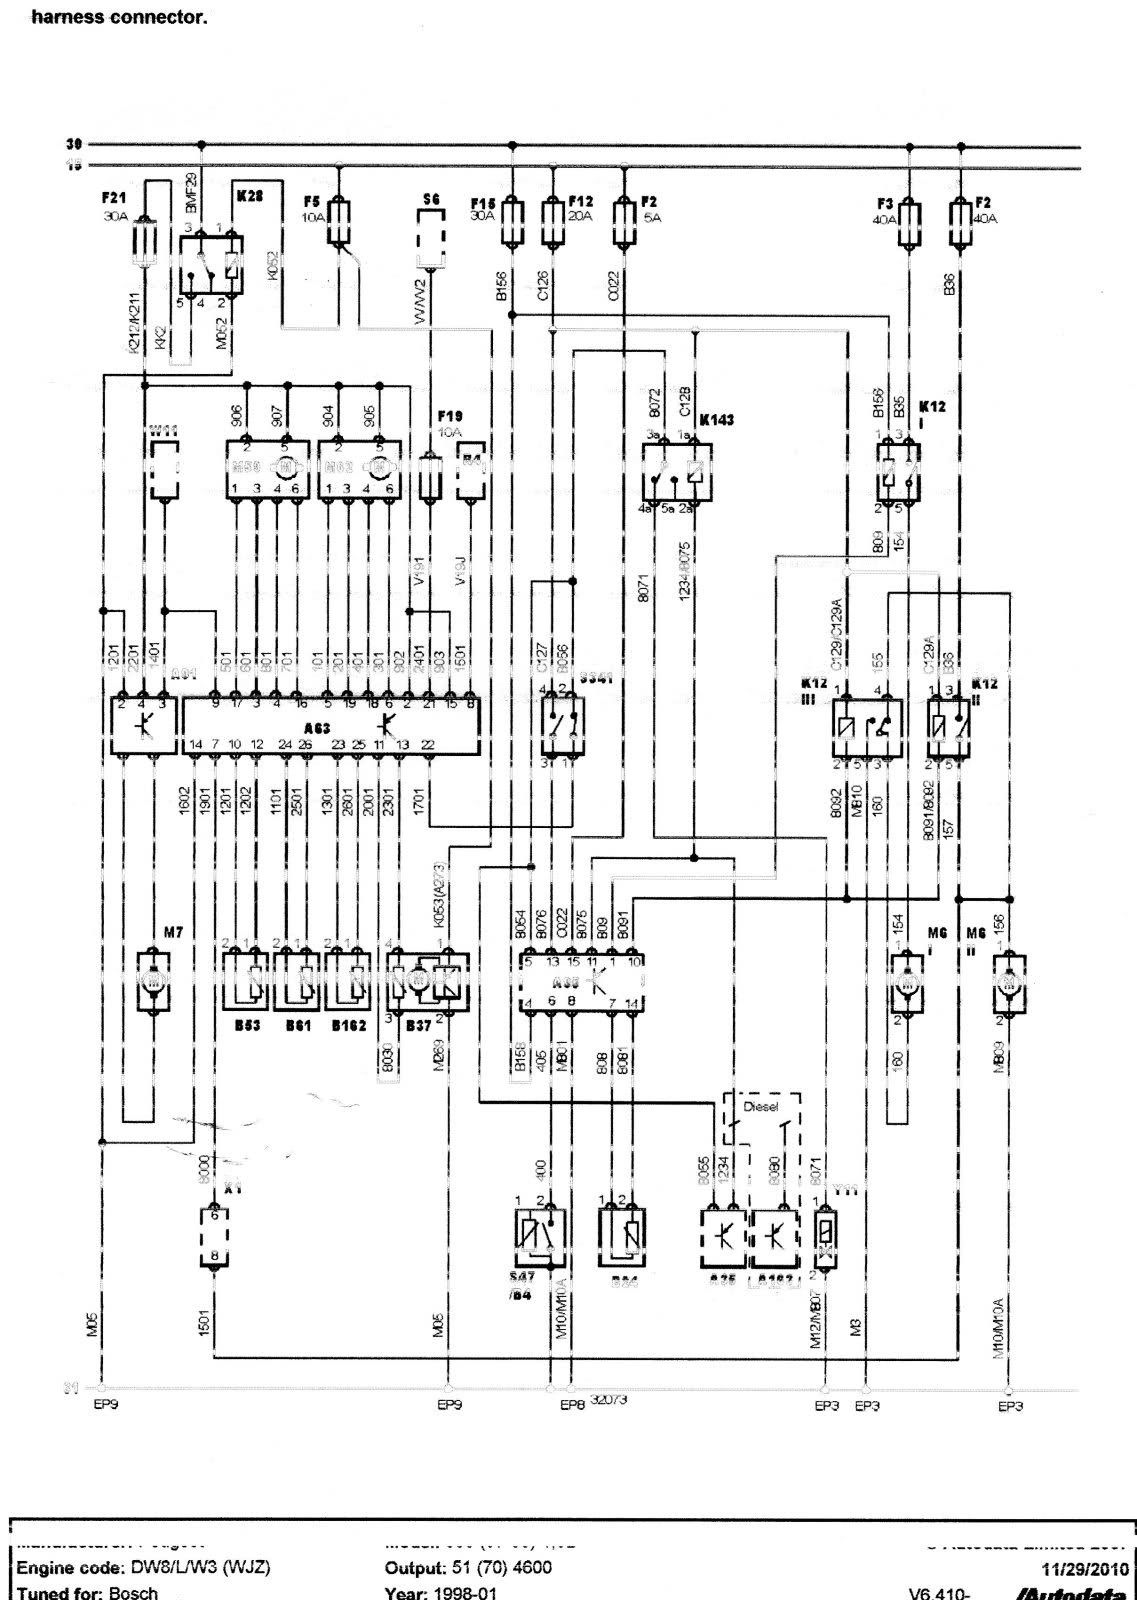 medium resolution of peugeot 406 wiring diagram free download peugeot 405 fuse box pdf wiring diagram schematics